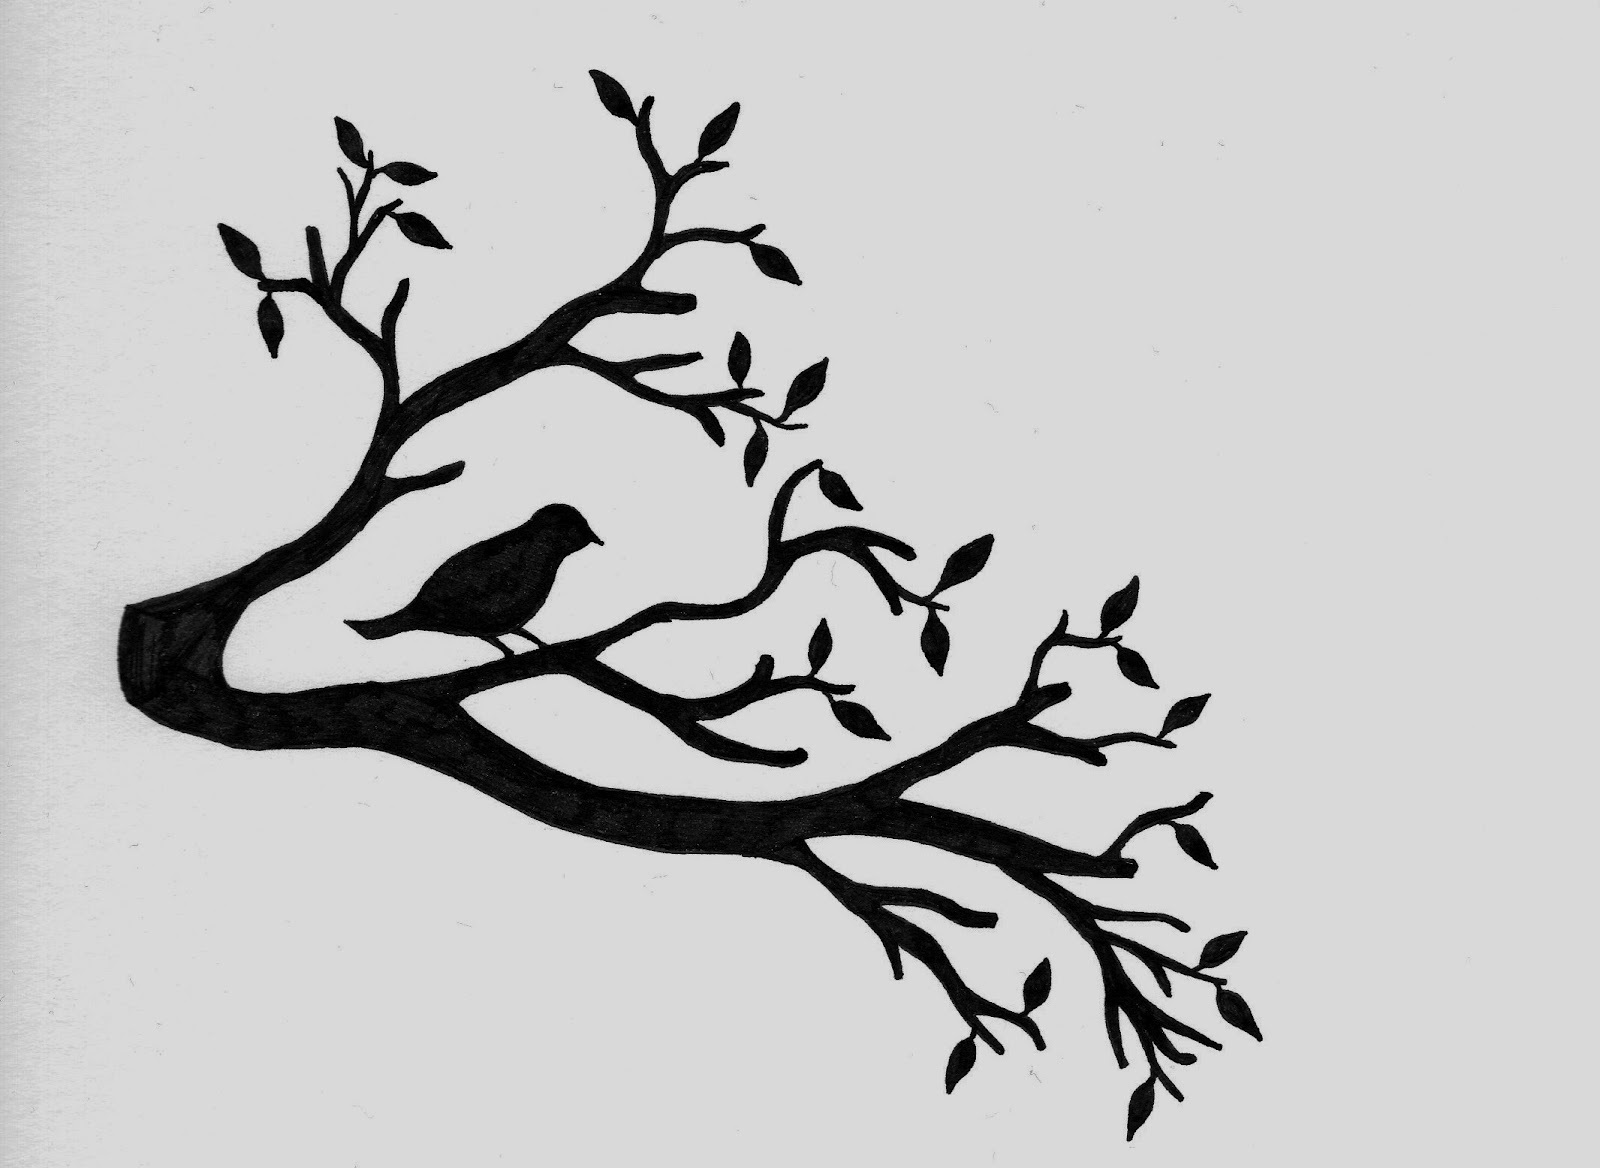 tree branch silhouette tree branch silhouette clip art at getdrawings free download tree silhouette branch